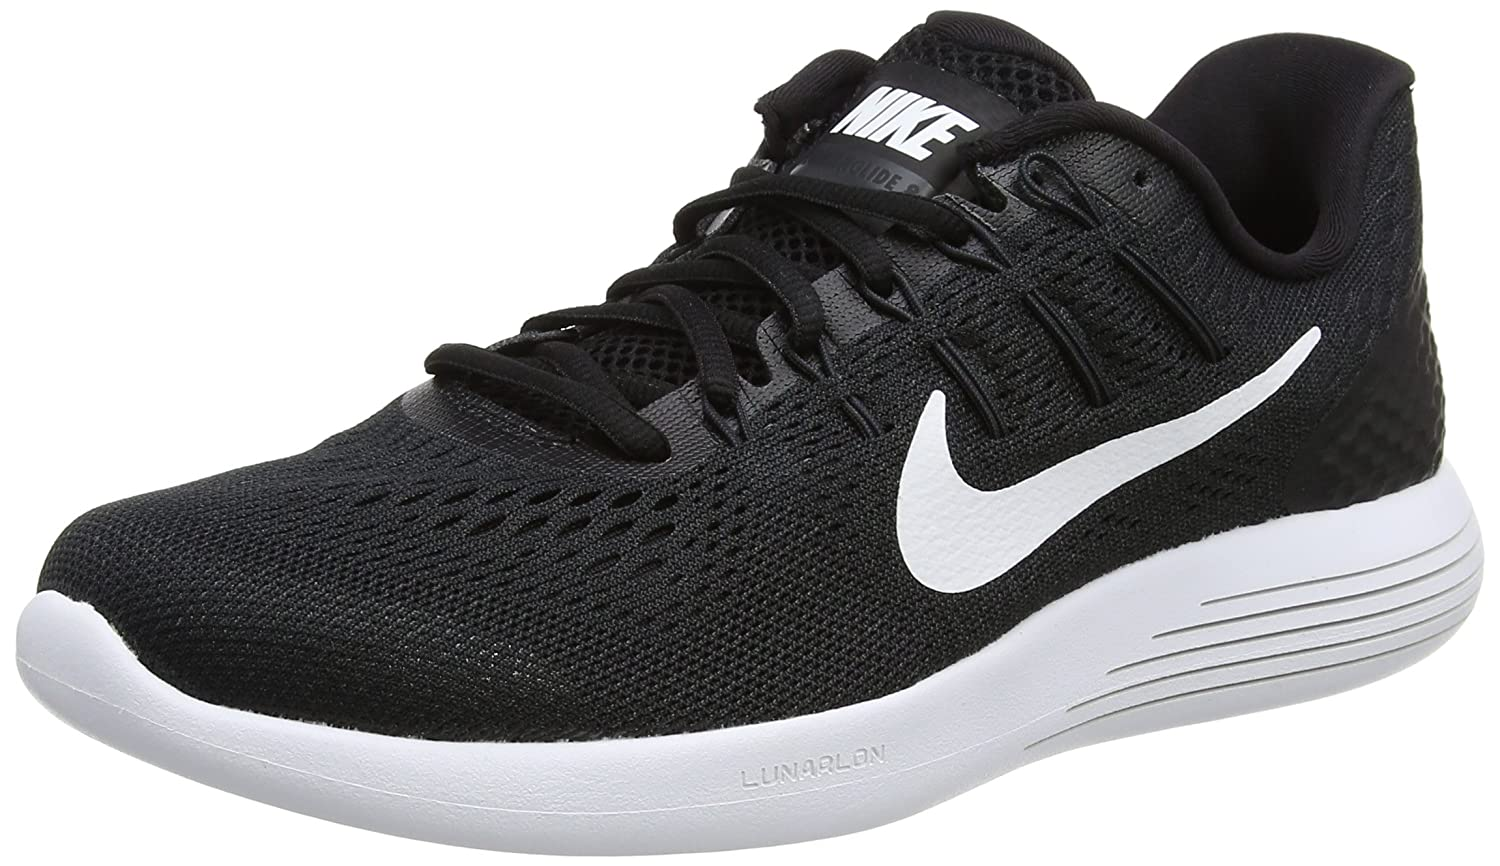 uk availability cb4d6 9cbca Nike Lunarglide 8 Men's Running Shoes, Black/White ...